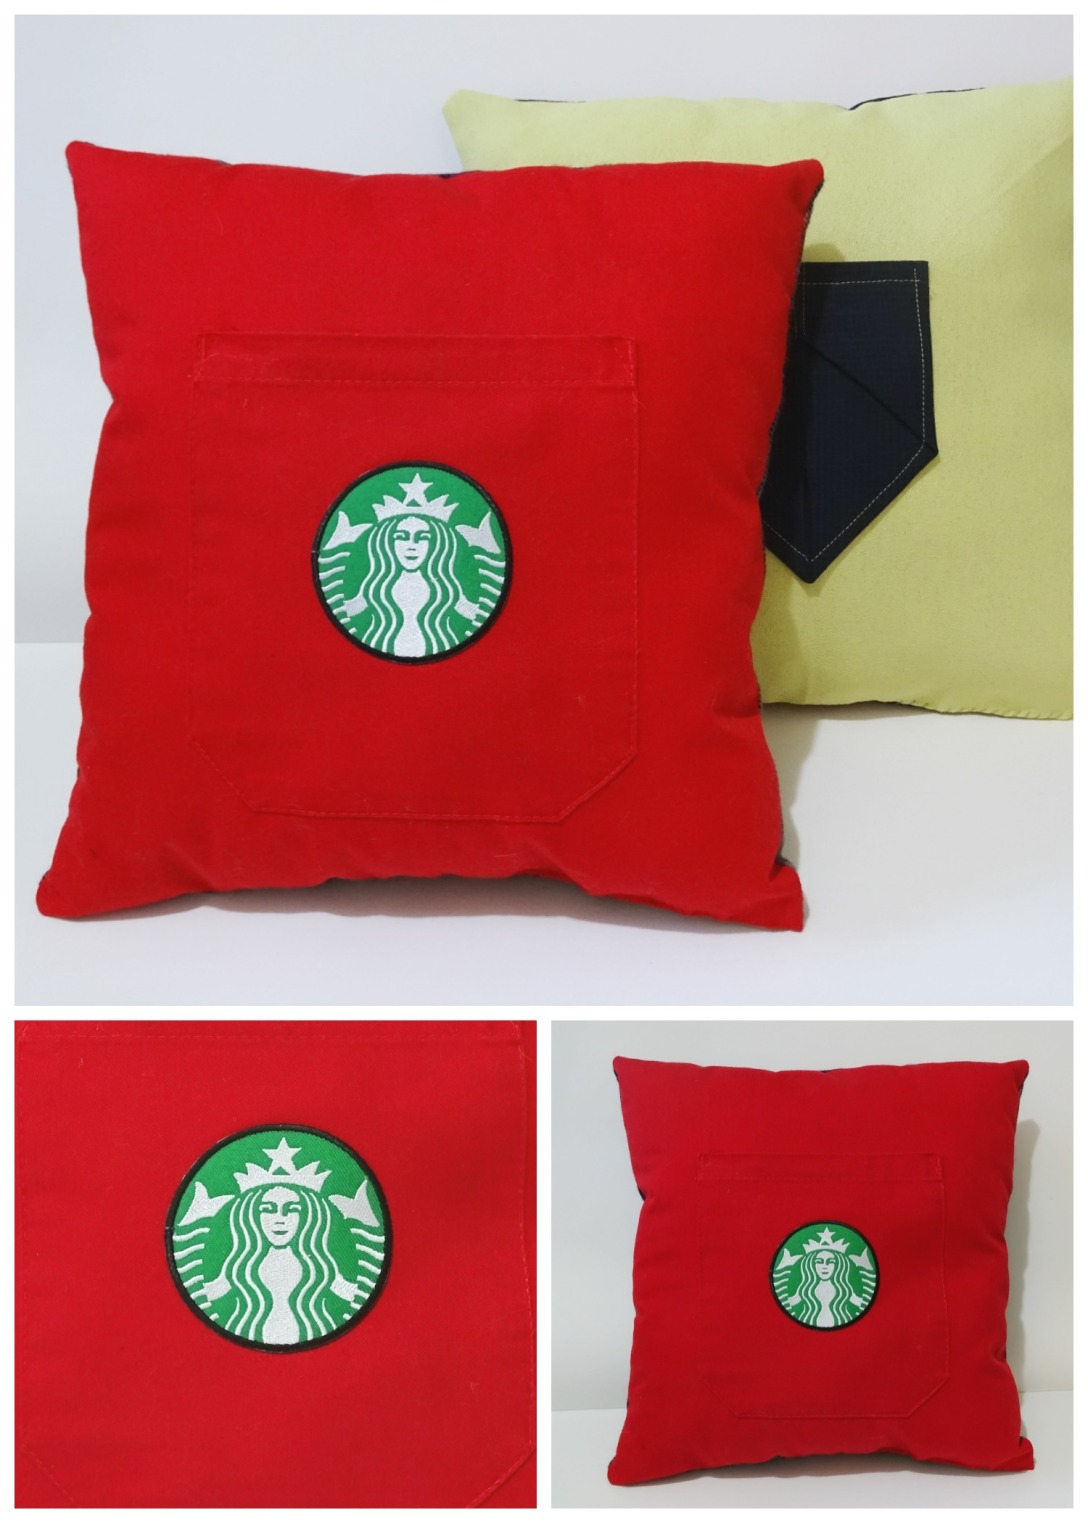 pinterest-starbucks-pillow-diy